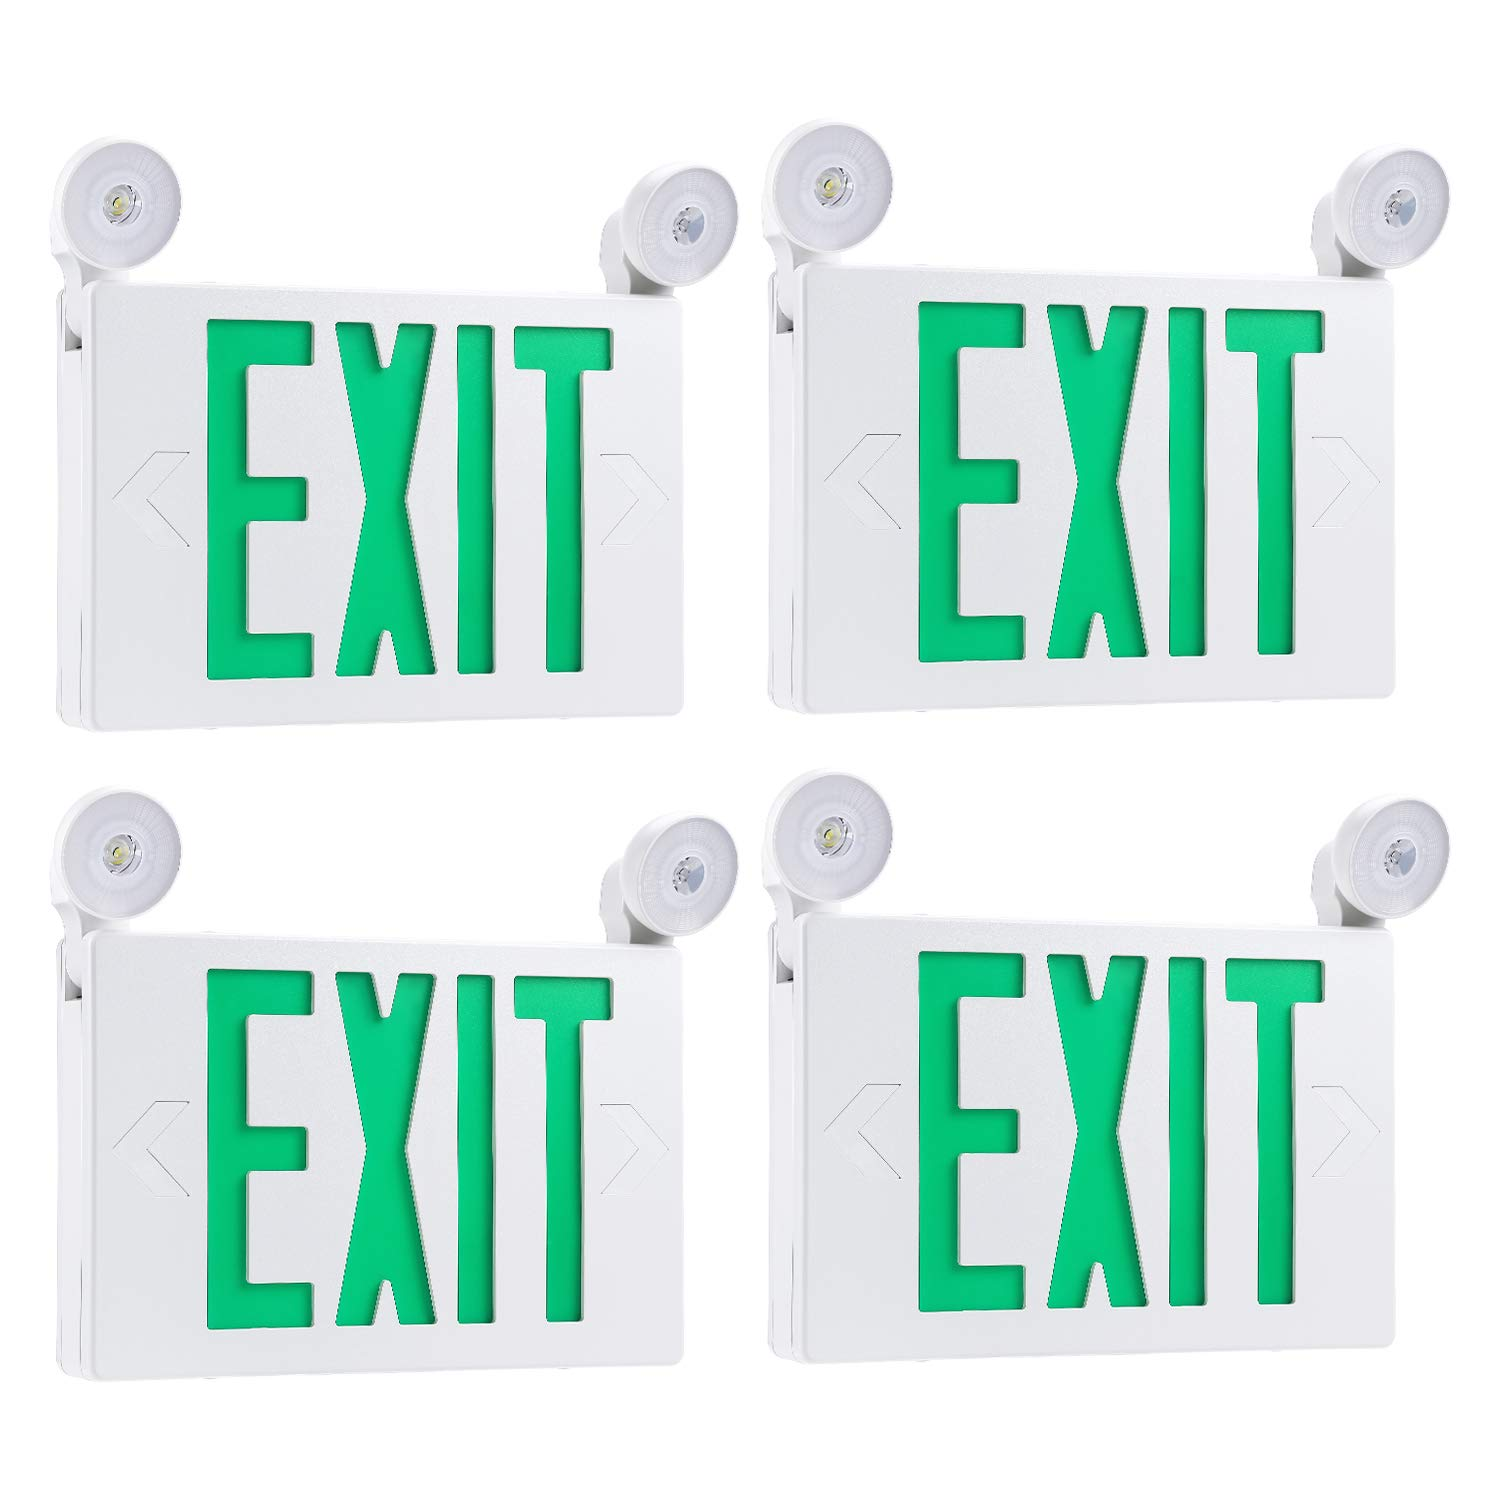 TORCHSTAR Green LED Exit Sign with UL Listed Emergency Light, AC 120V/277V, Battery Included, Top/Side/Back Mount Sign Light, for Hotels, Restaurants, Shopping Malls, Hospitals, Pack of 4